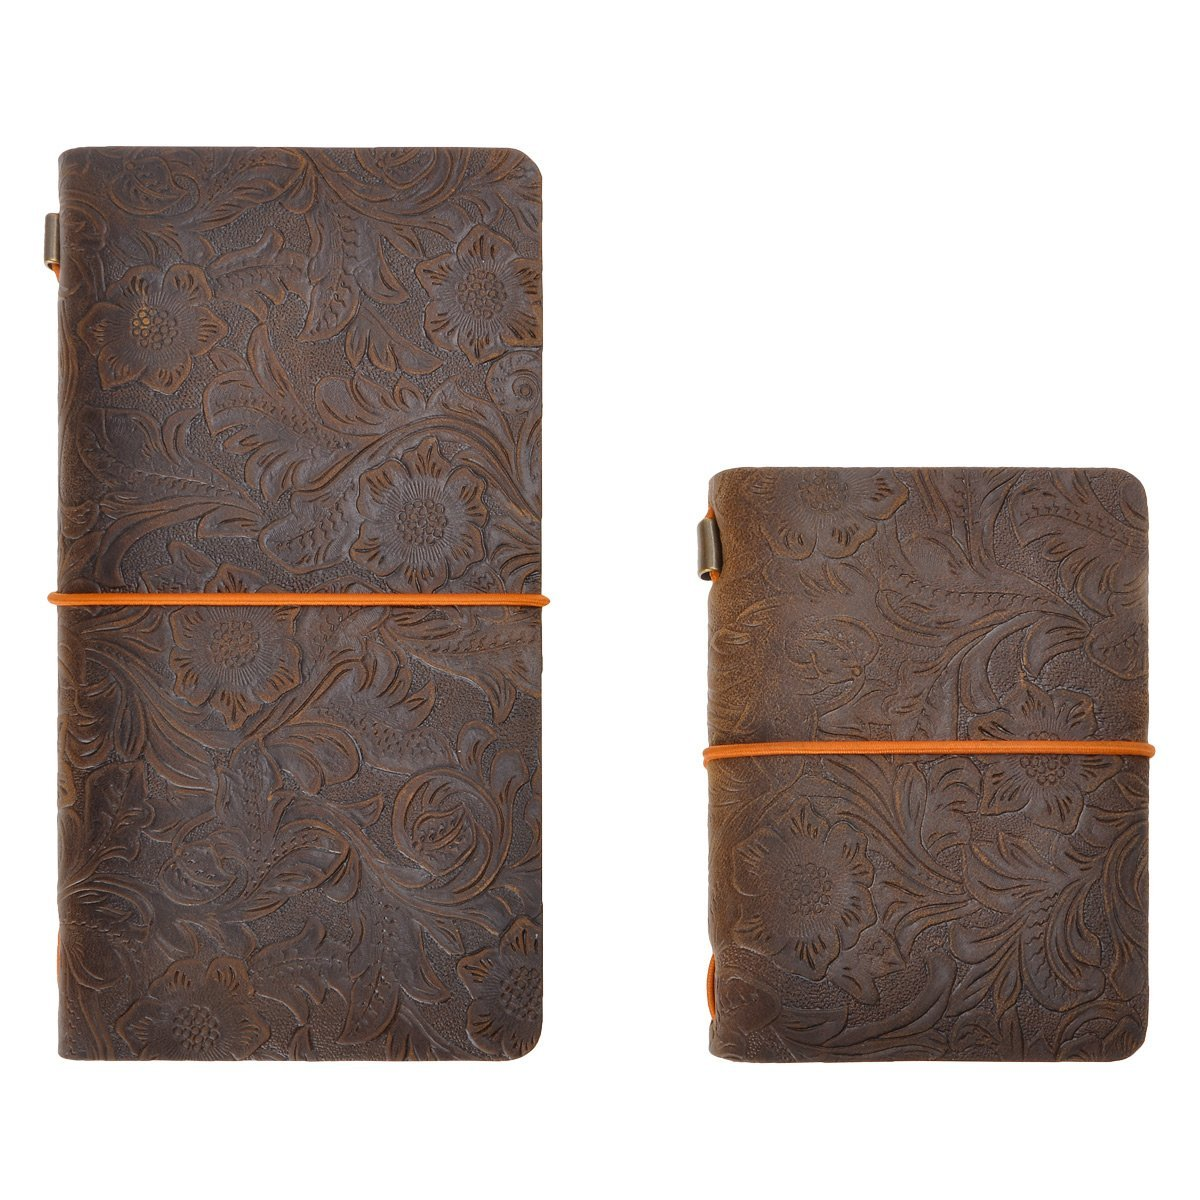 """Refillable Travelers Notebook Vintage Flower Embossed Leather Journal Set, 4.7"""" x 8.6"""" &3.9"""" x 5.2"""", for Men Women Writing Gift, by ZLYC, Dark Coffee"""